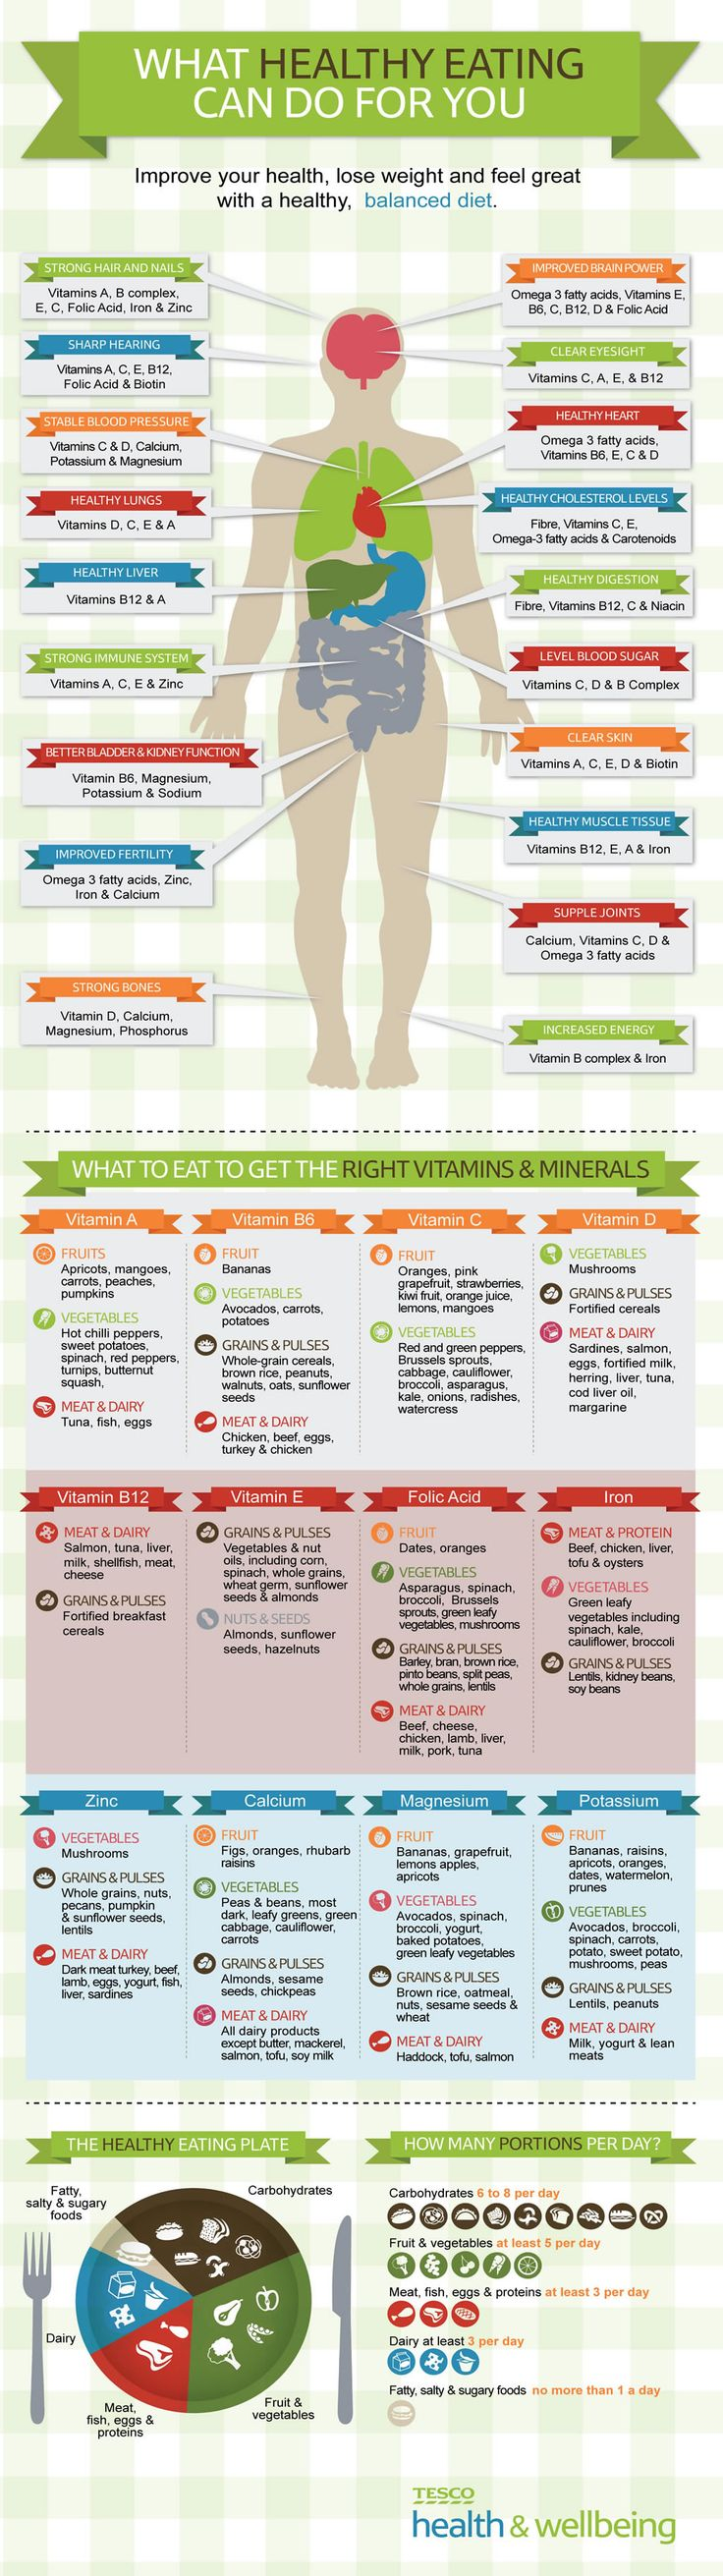 What Healthy Eating Can Do For You by tescohealthandwellbeing #Infographic #Healthy_Eating